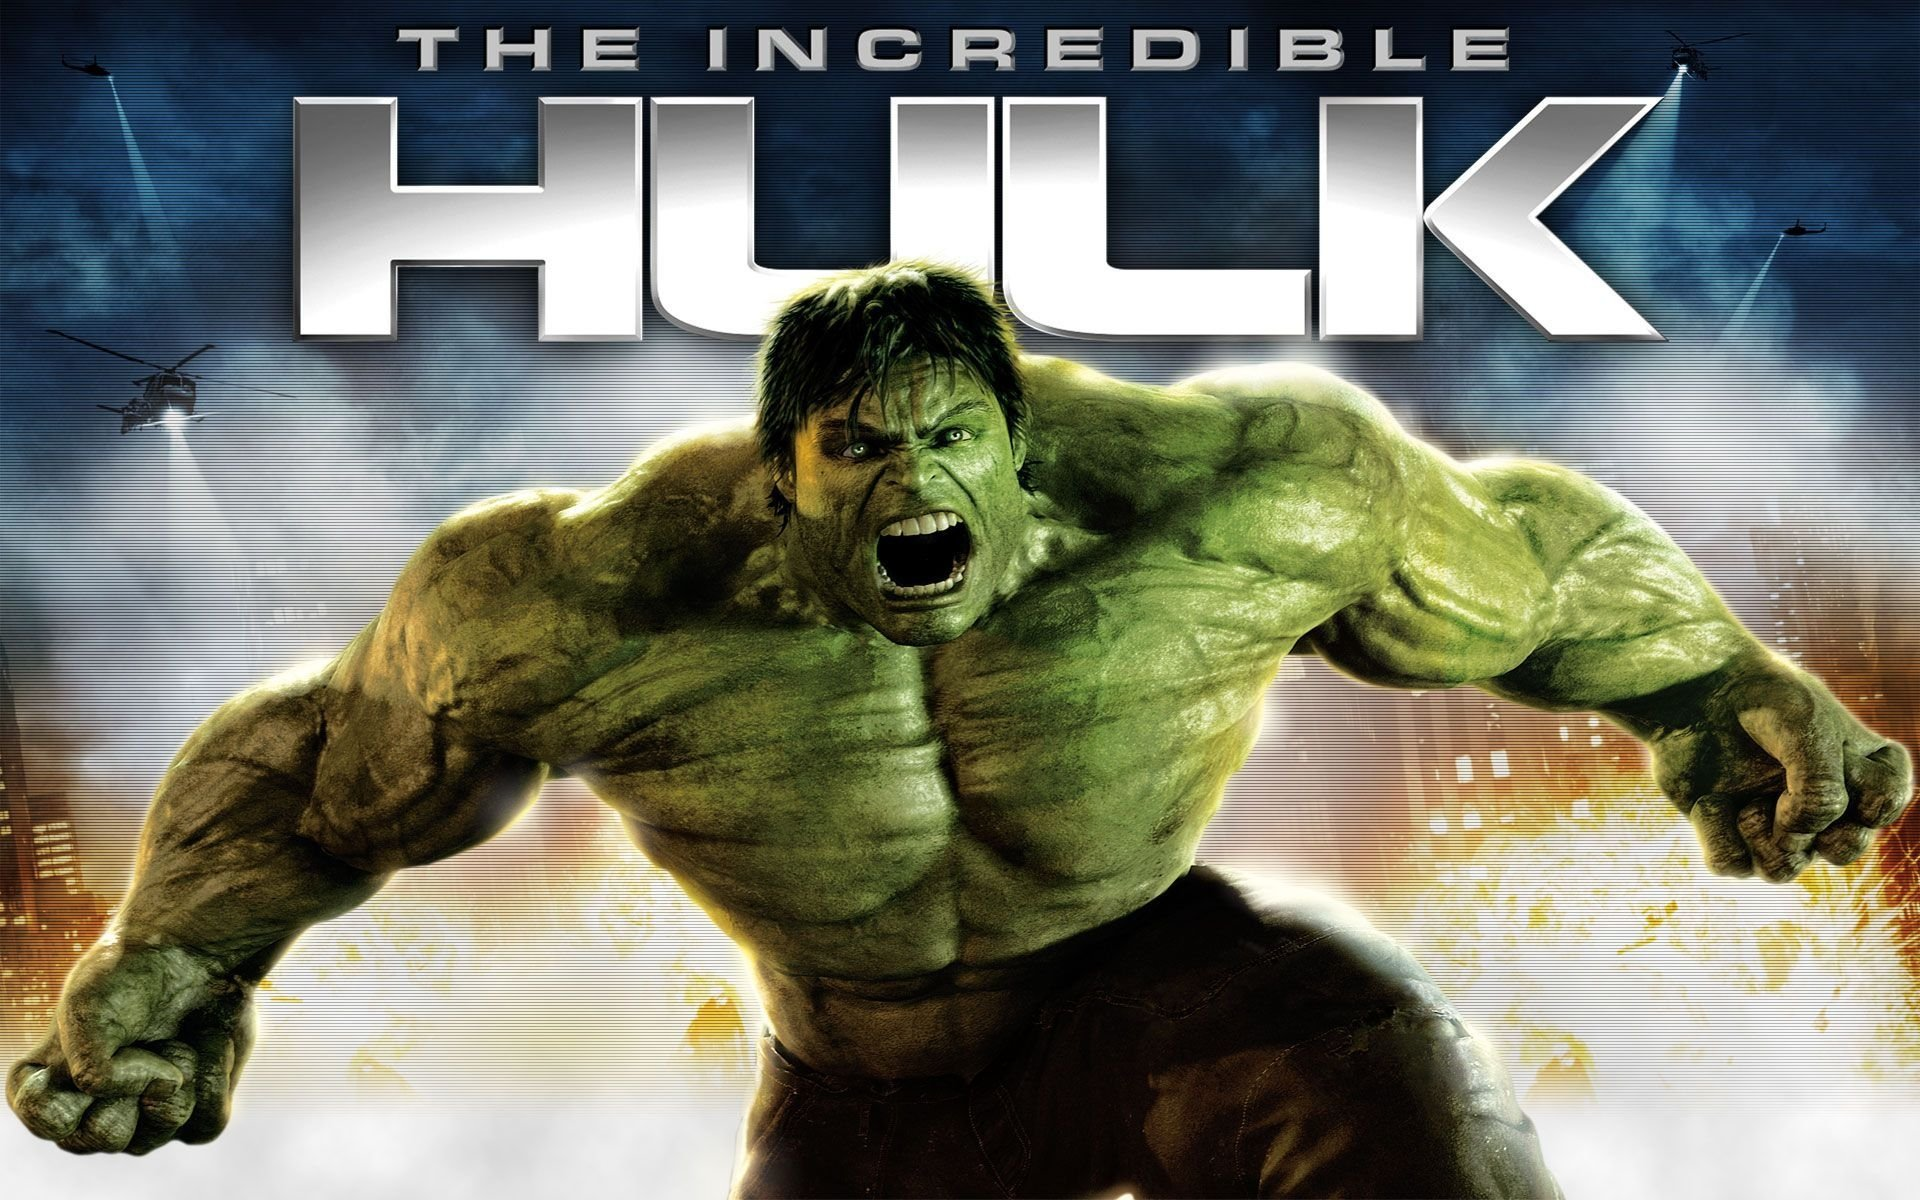 The Incredible Hulk - Ankit2World